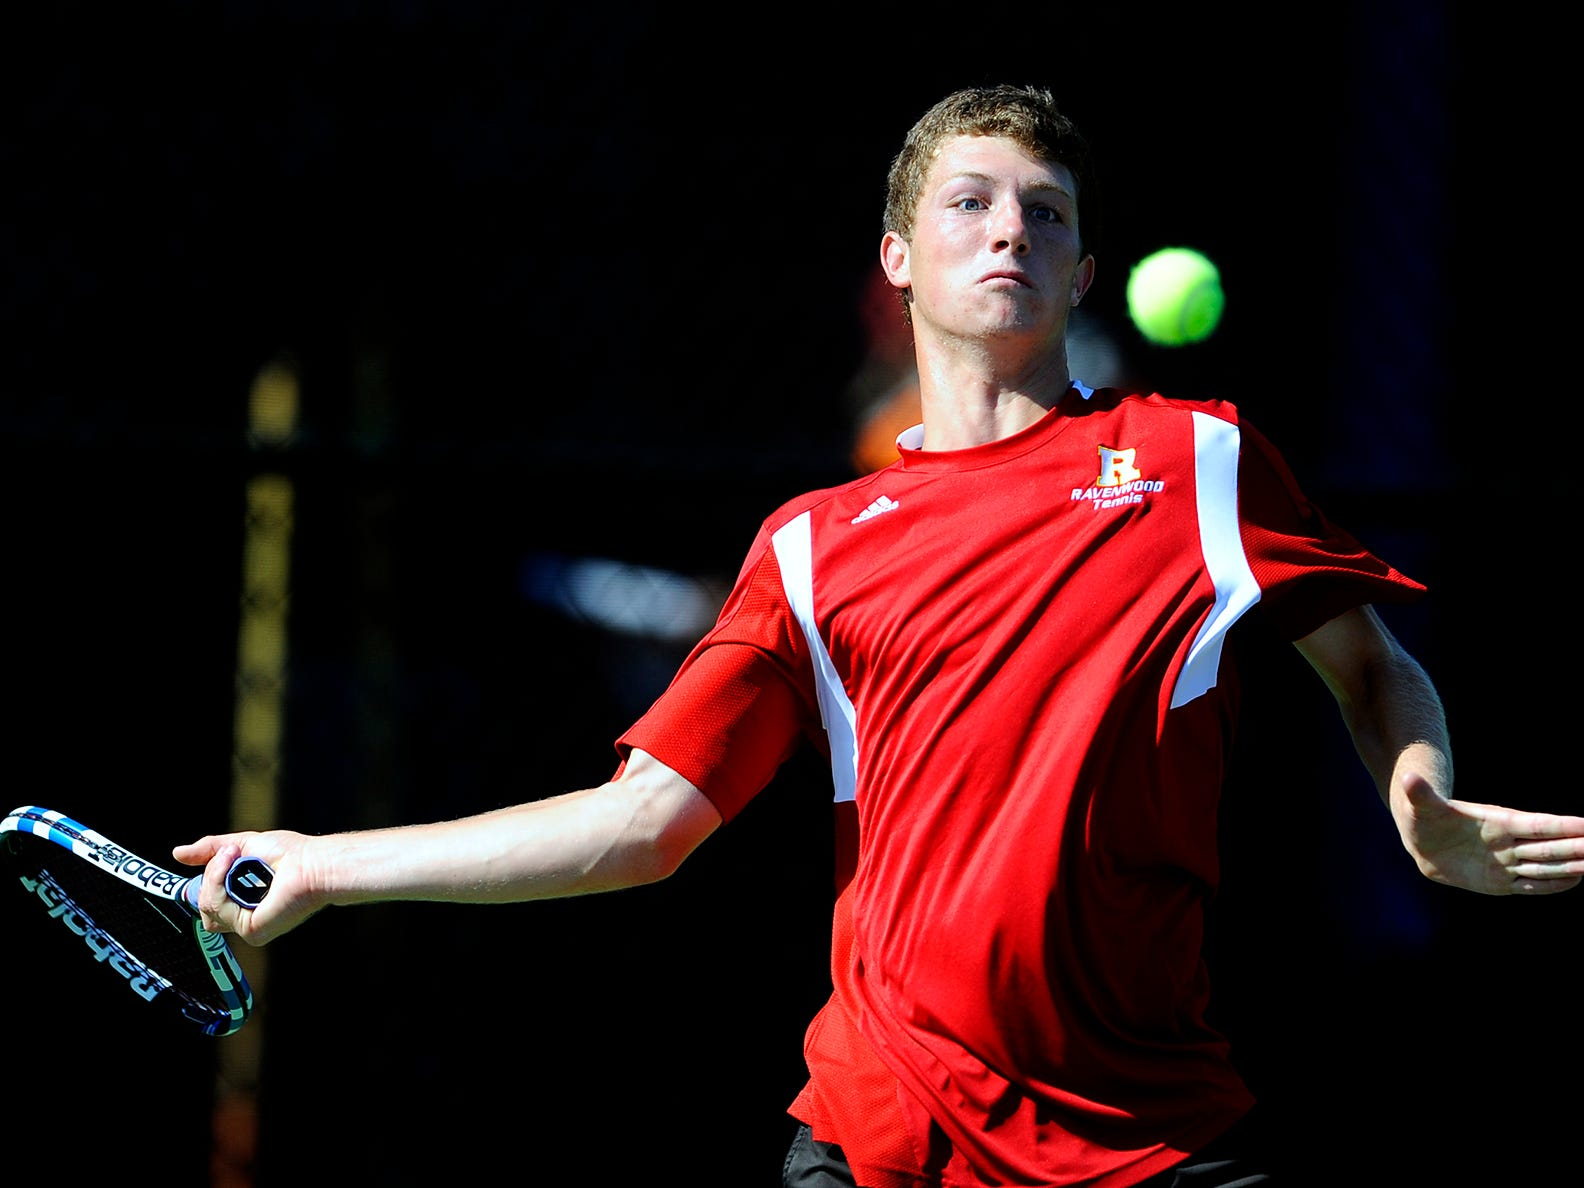 Ravenwood's Steven Karl competes for the 2015 TSSAA AAA state singles championship.